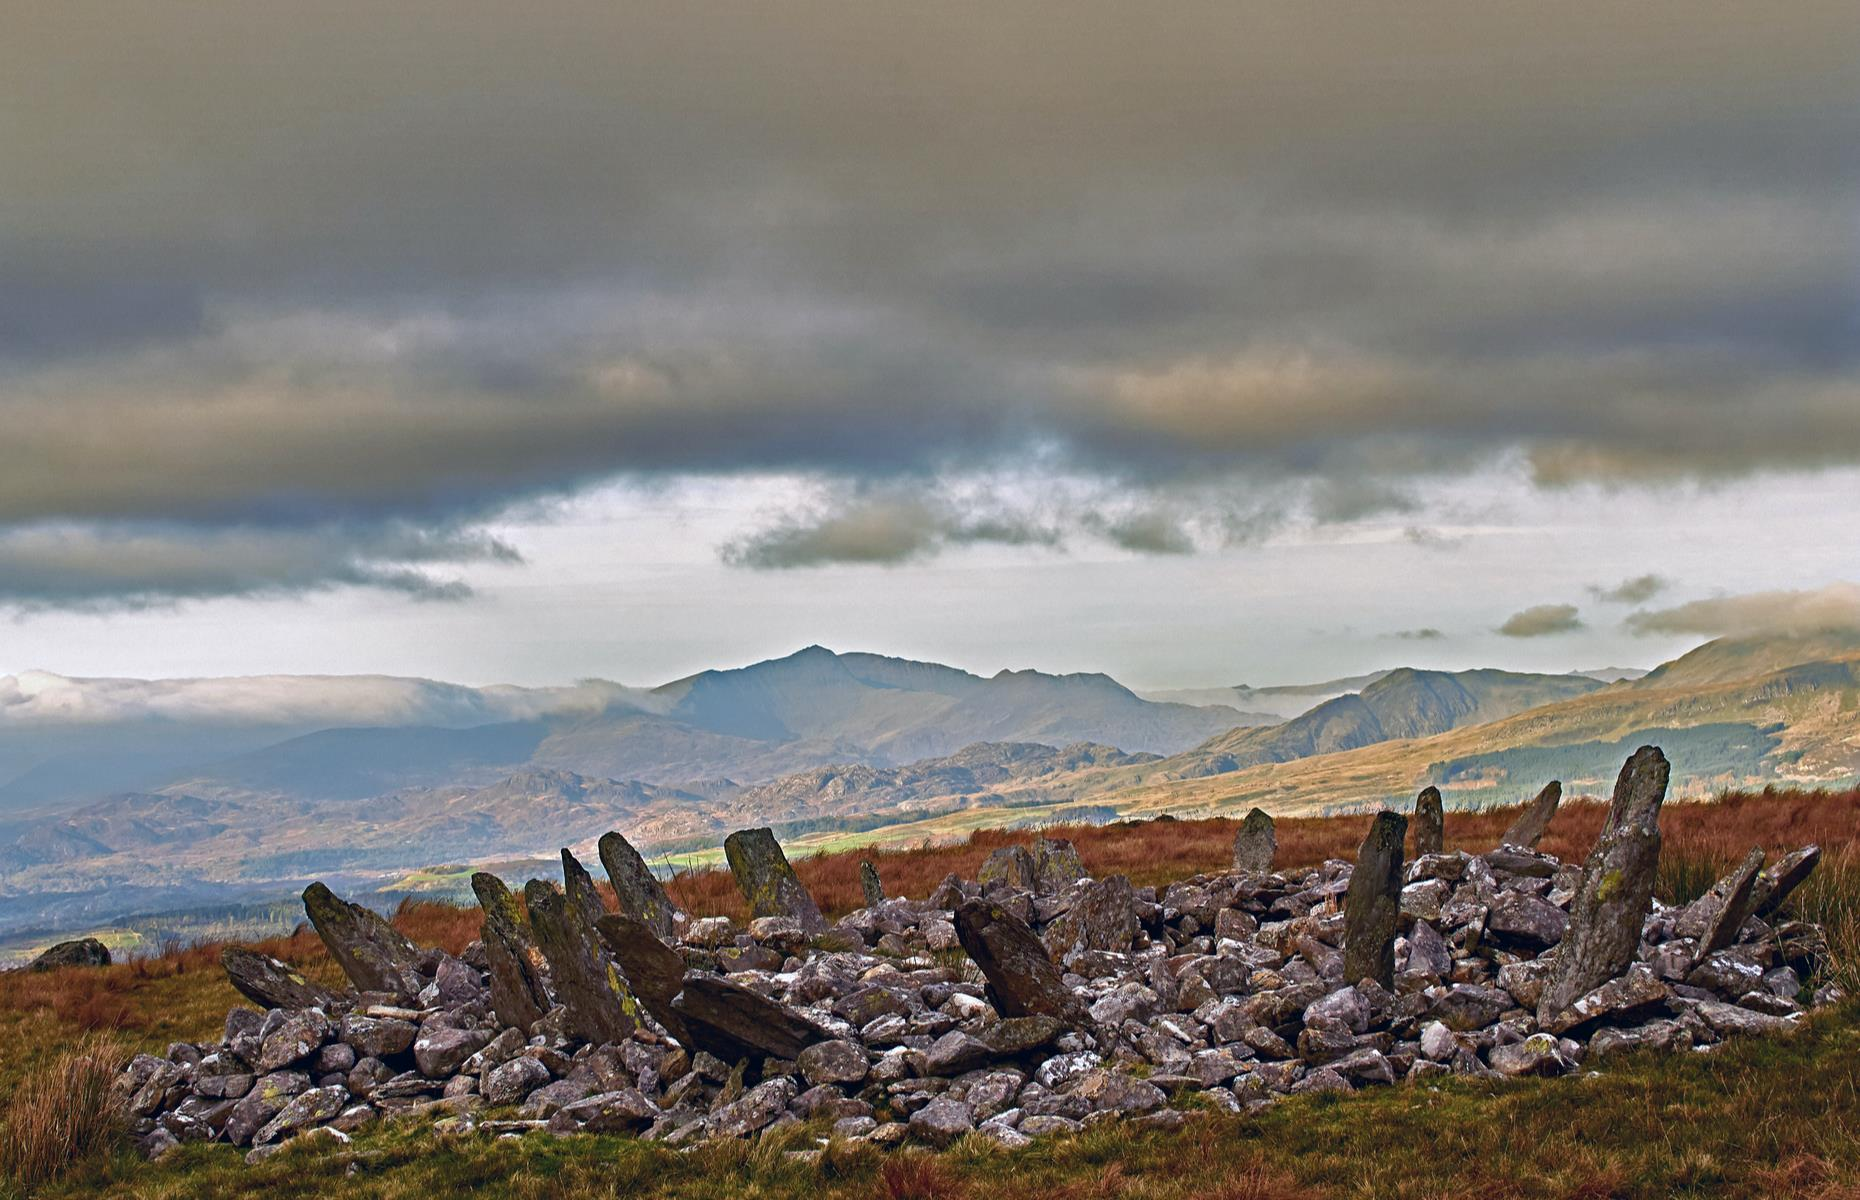 """Slide 18 of 31: The Bronze Age ring cairn of Bryn Cader Faner would once have marked a burial site. With its name translating as """"the hill crowned with the throne of the flag jagged slate"""", the spiky structure is an arresting sight amid a lonely patch of moorland in the brooding hills of Snowdonia. The 4,000-year-old formation has around 15 long, thin stone slabs of slate that lean outwards, reminiscent of a crown of thorns. Find more reasons to love Wales here."""